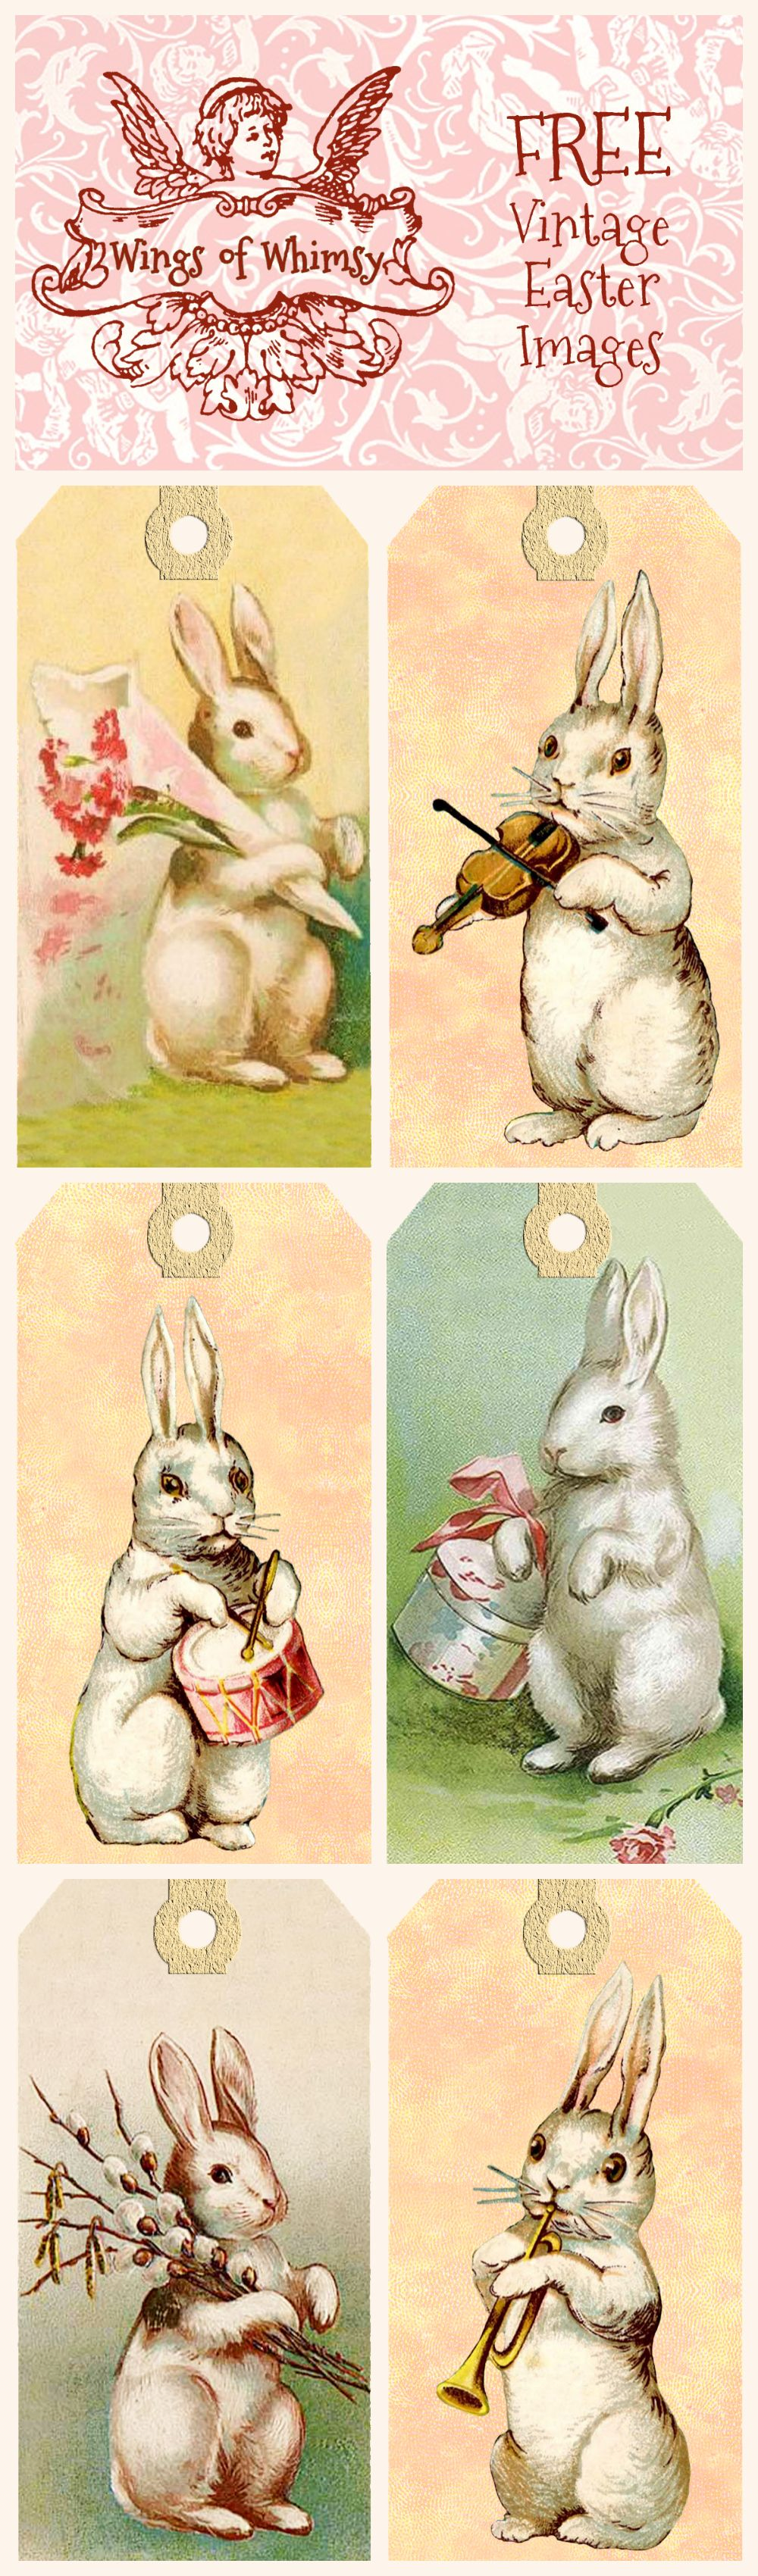 Vintage easter bunny tags free printables vintage easter free vintage easter bunnies tags wings of whimsy negle Images